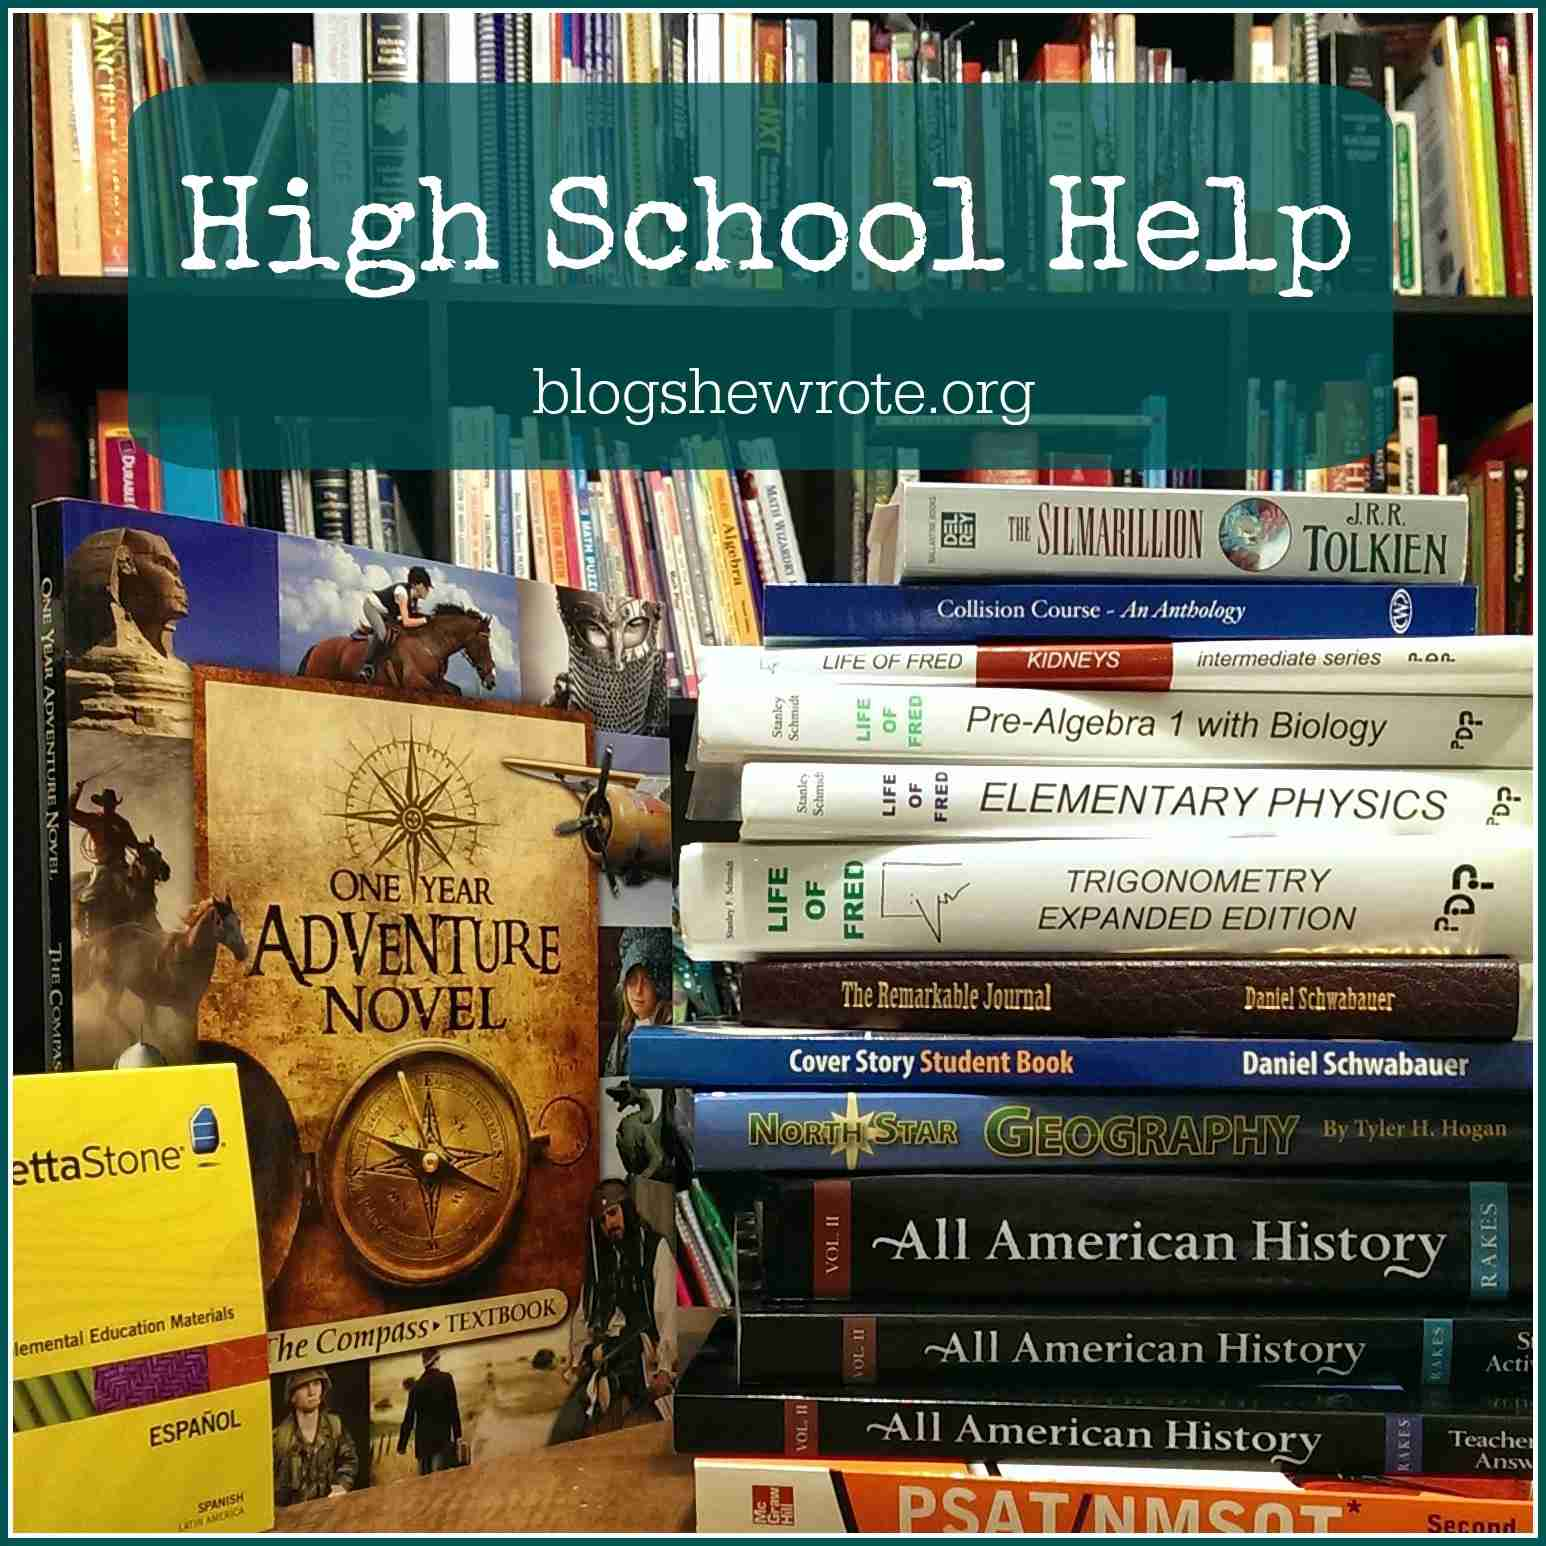 Blog, She Wrote: High School Help